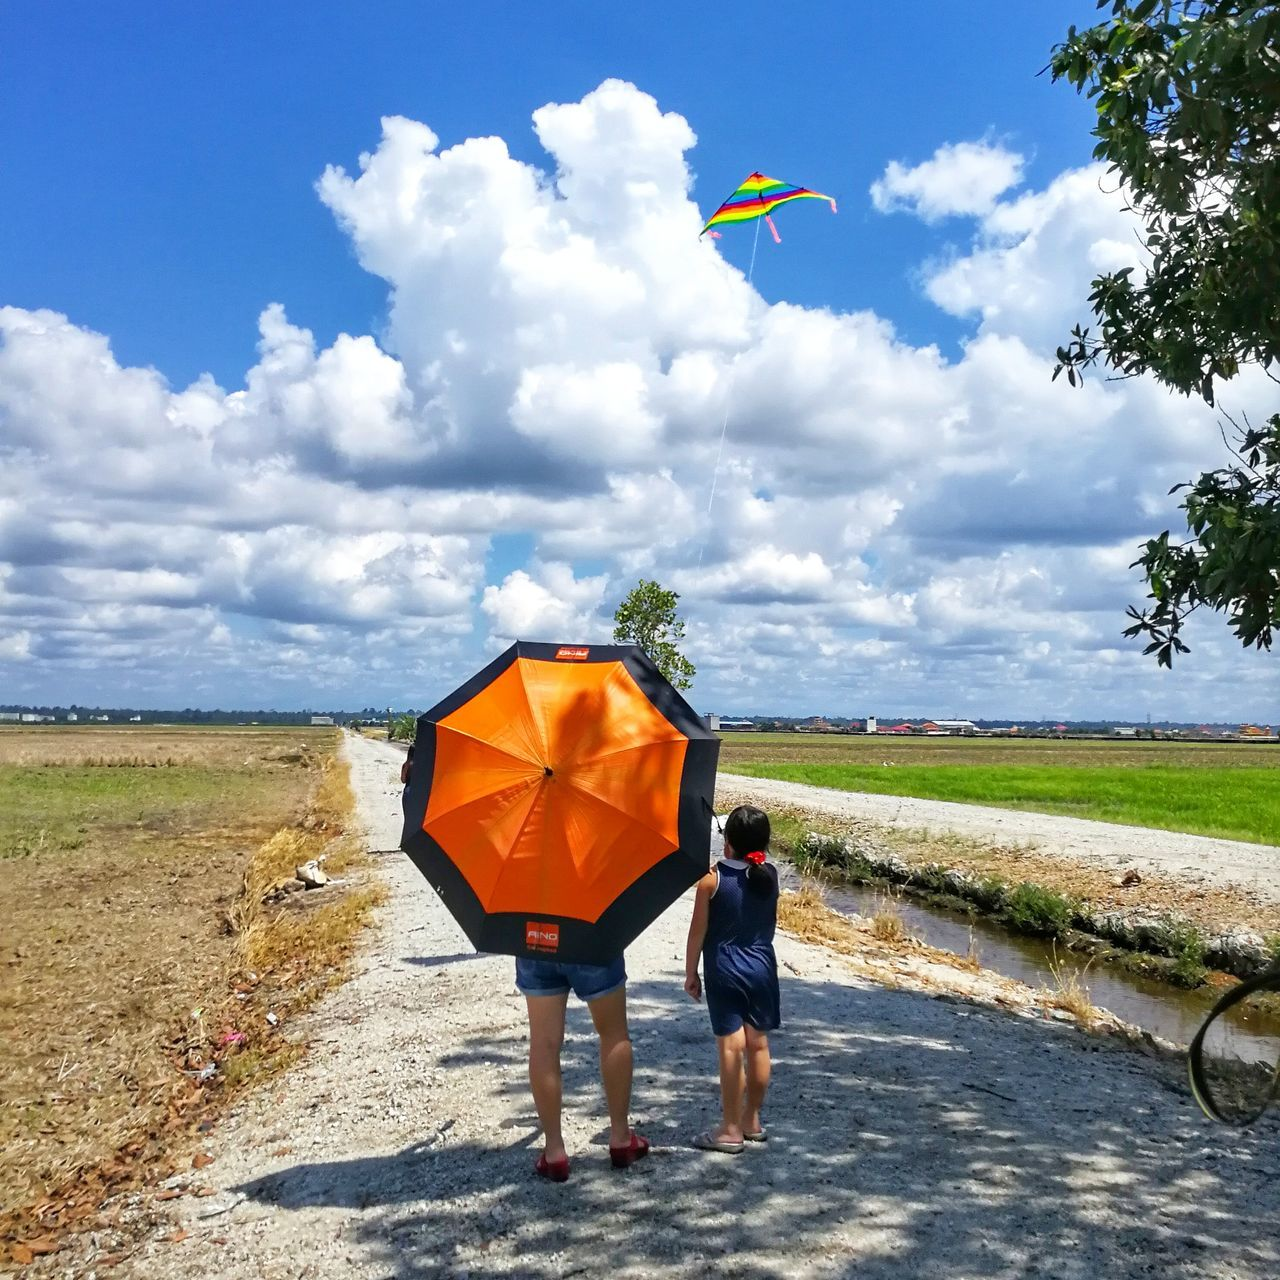 real people, sky, cloud - sky, rear view, walking, leisure activity, two people, nature, day, men, full length, lifestyles, outdoors, childhood, togetherness, casual clothing, beauty in nature, road, landscape, women, boys, scenics, grass, people